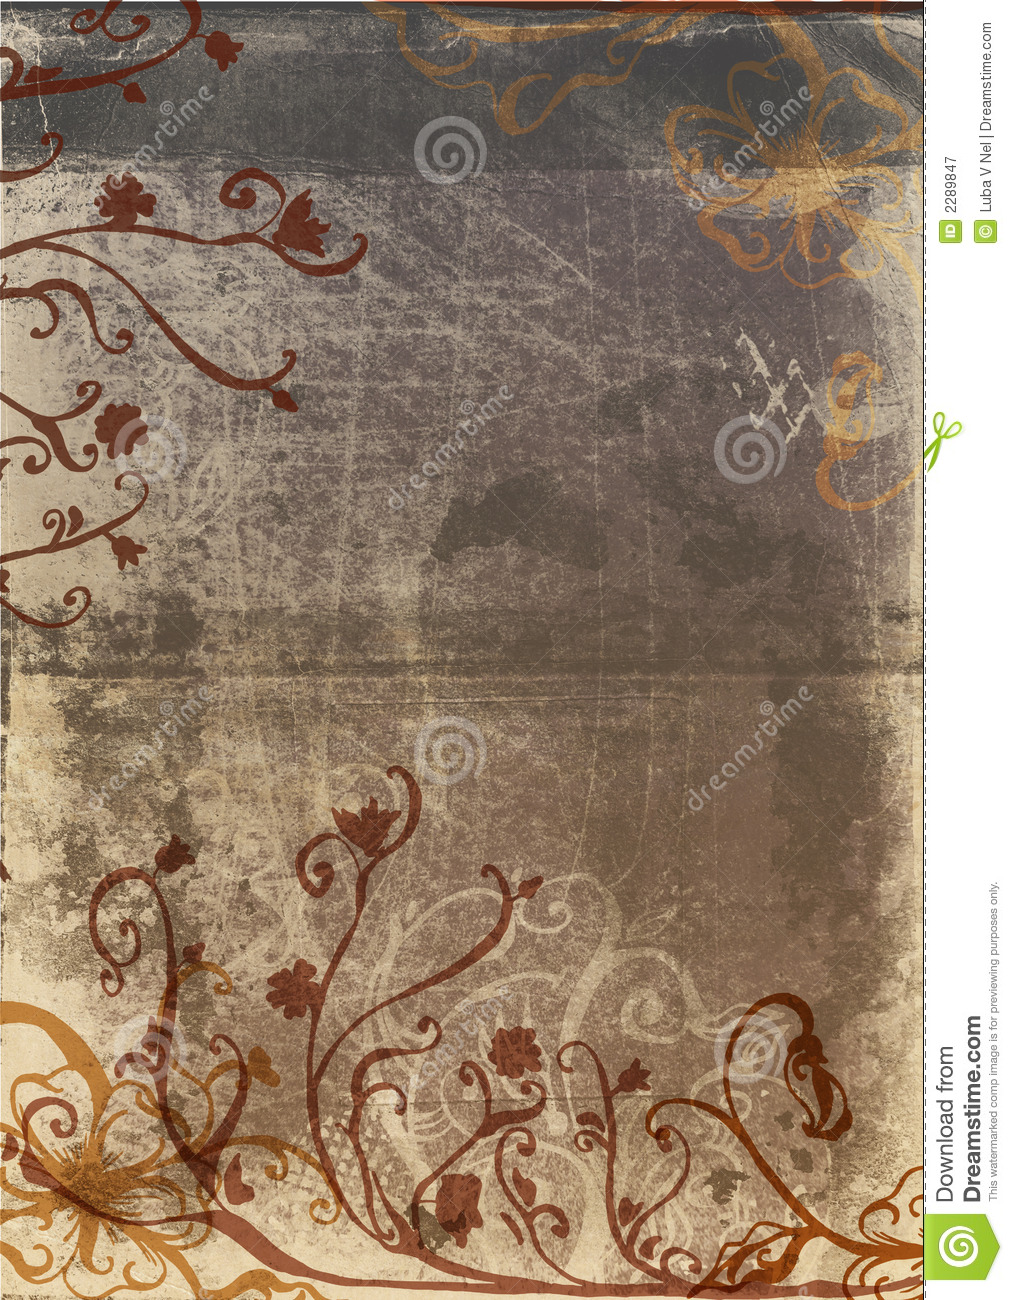 grunge page with rustic design royalty free stock